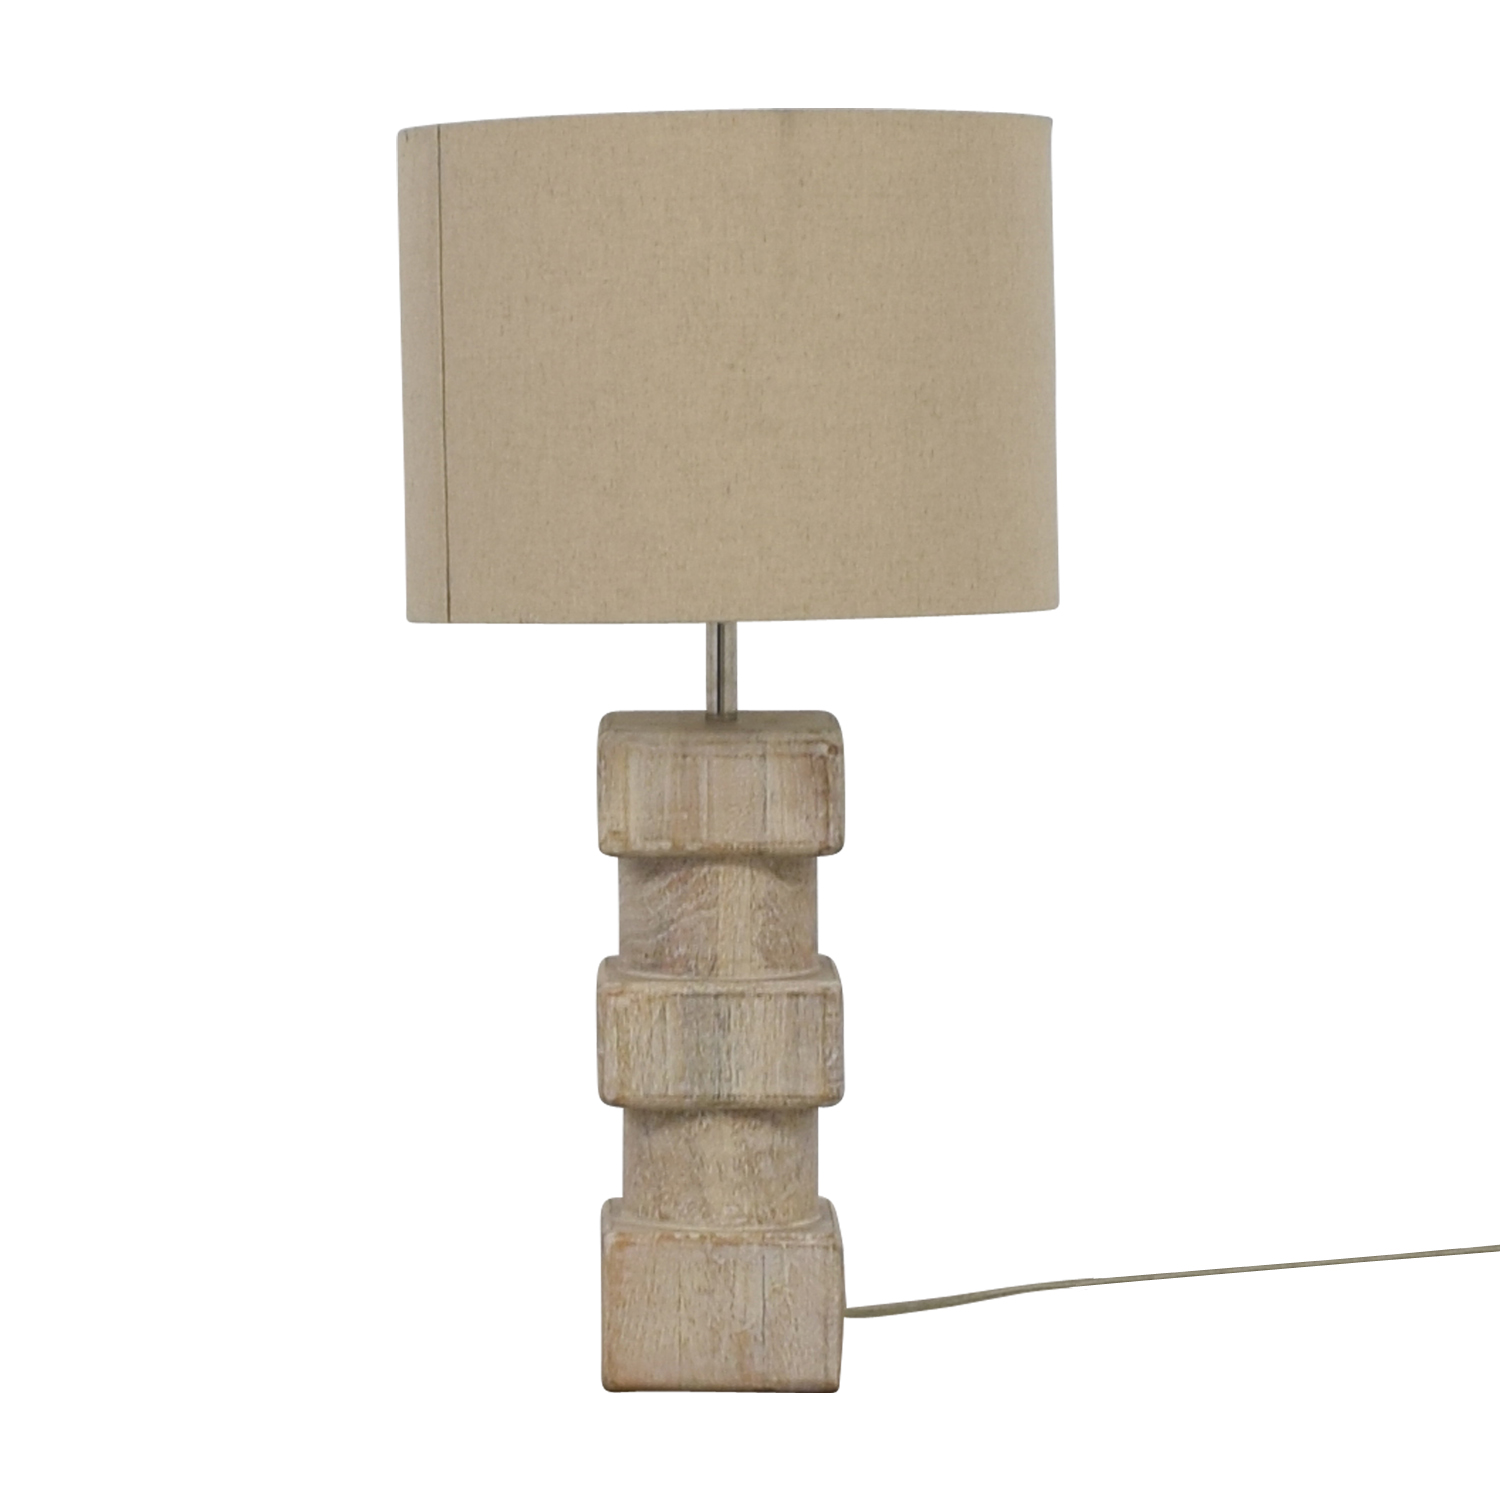 shop West Elm Table Lamp West Elm Decor